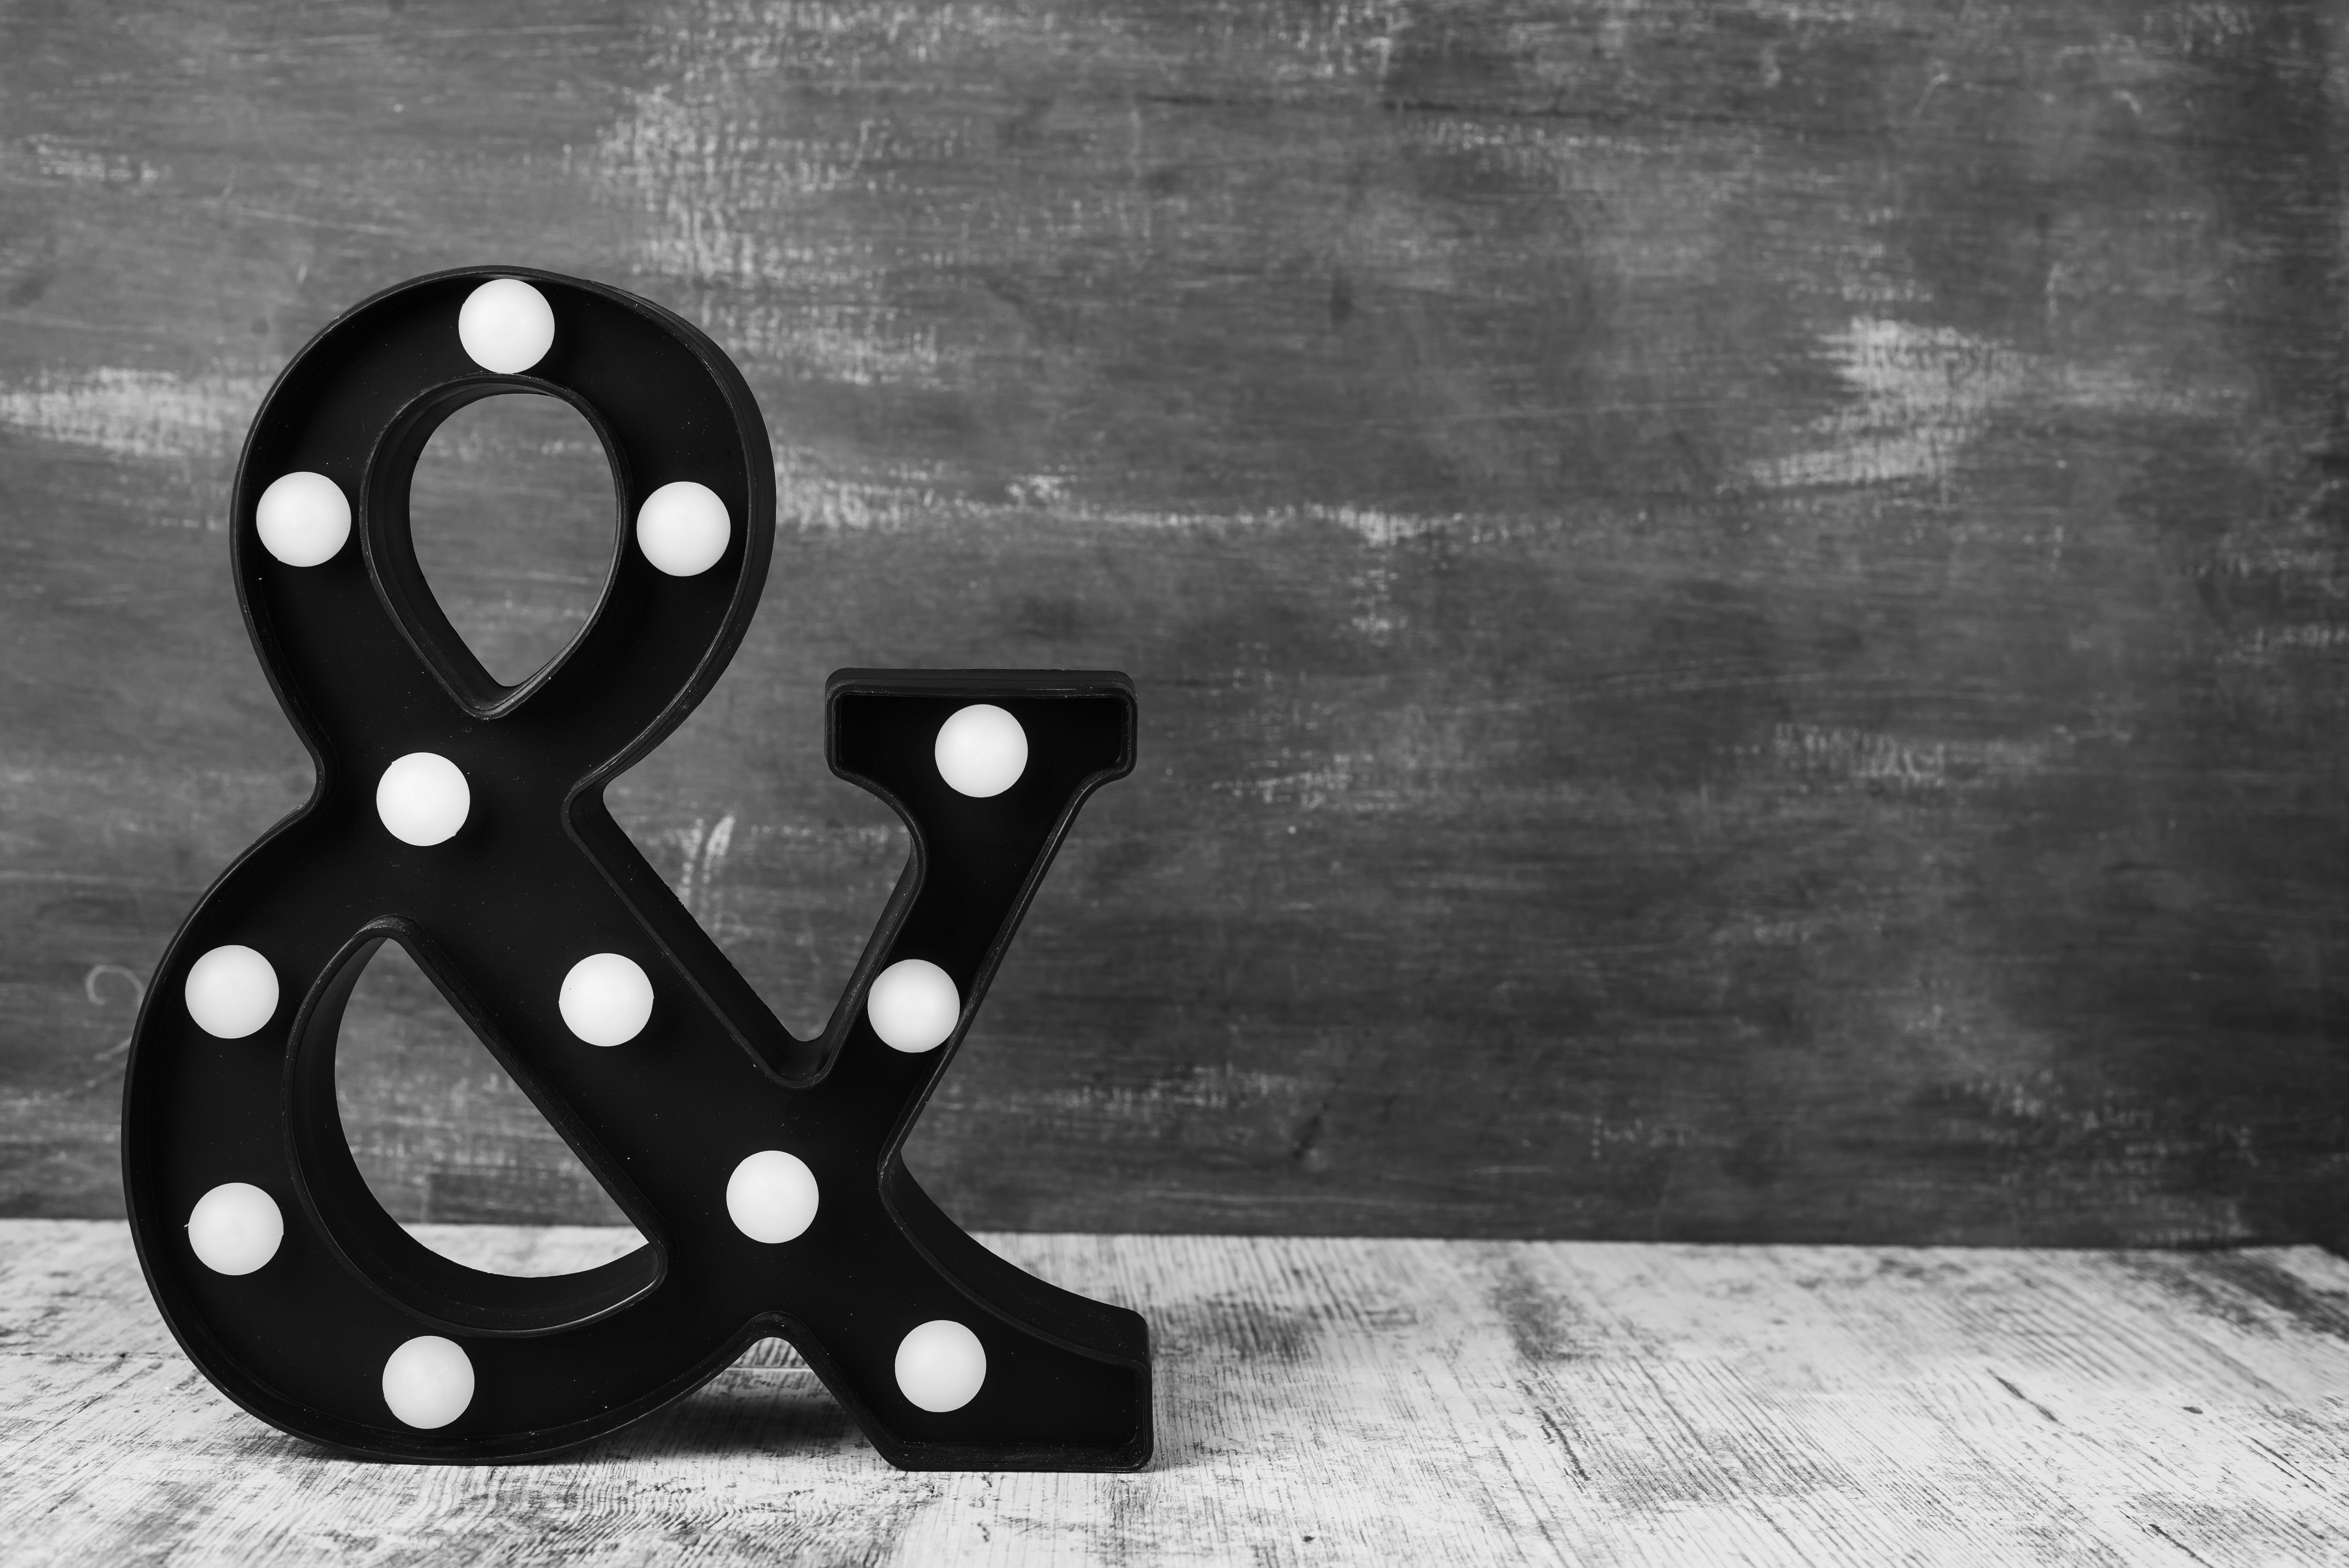 ampersand & sign on the background of a black board